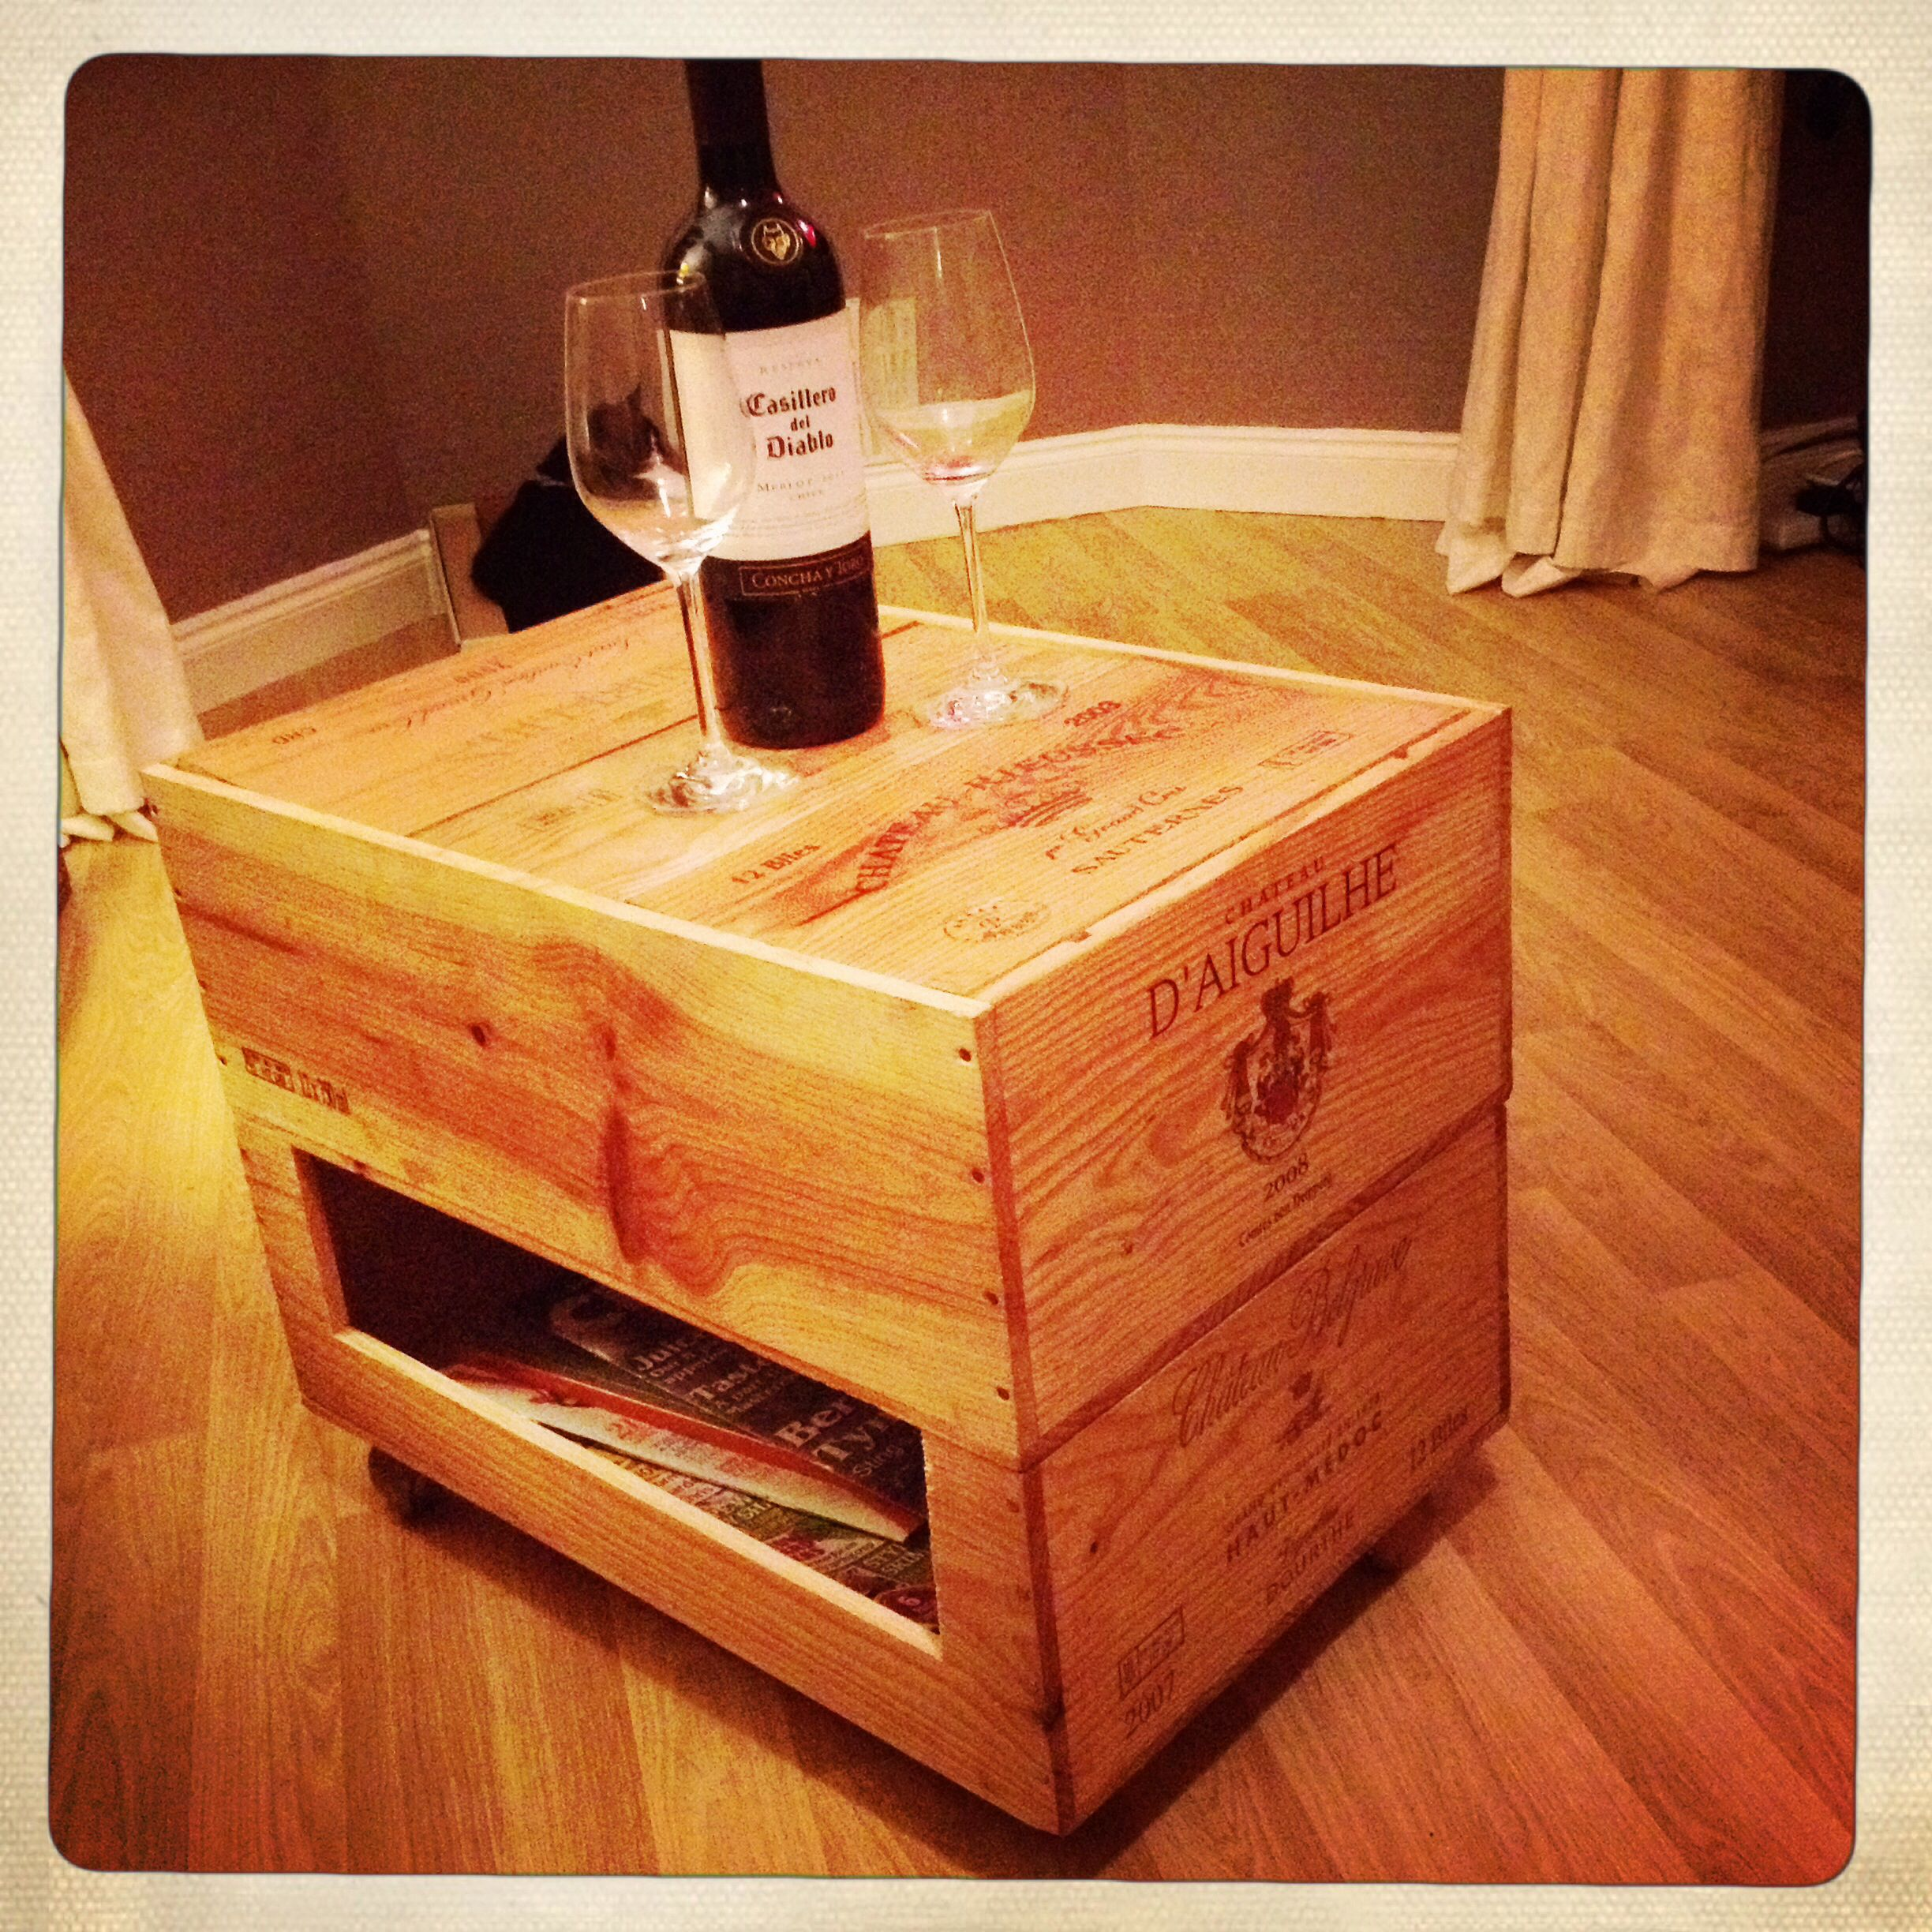 Wine box coffee table and magazine rack c o Mr Morley